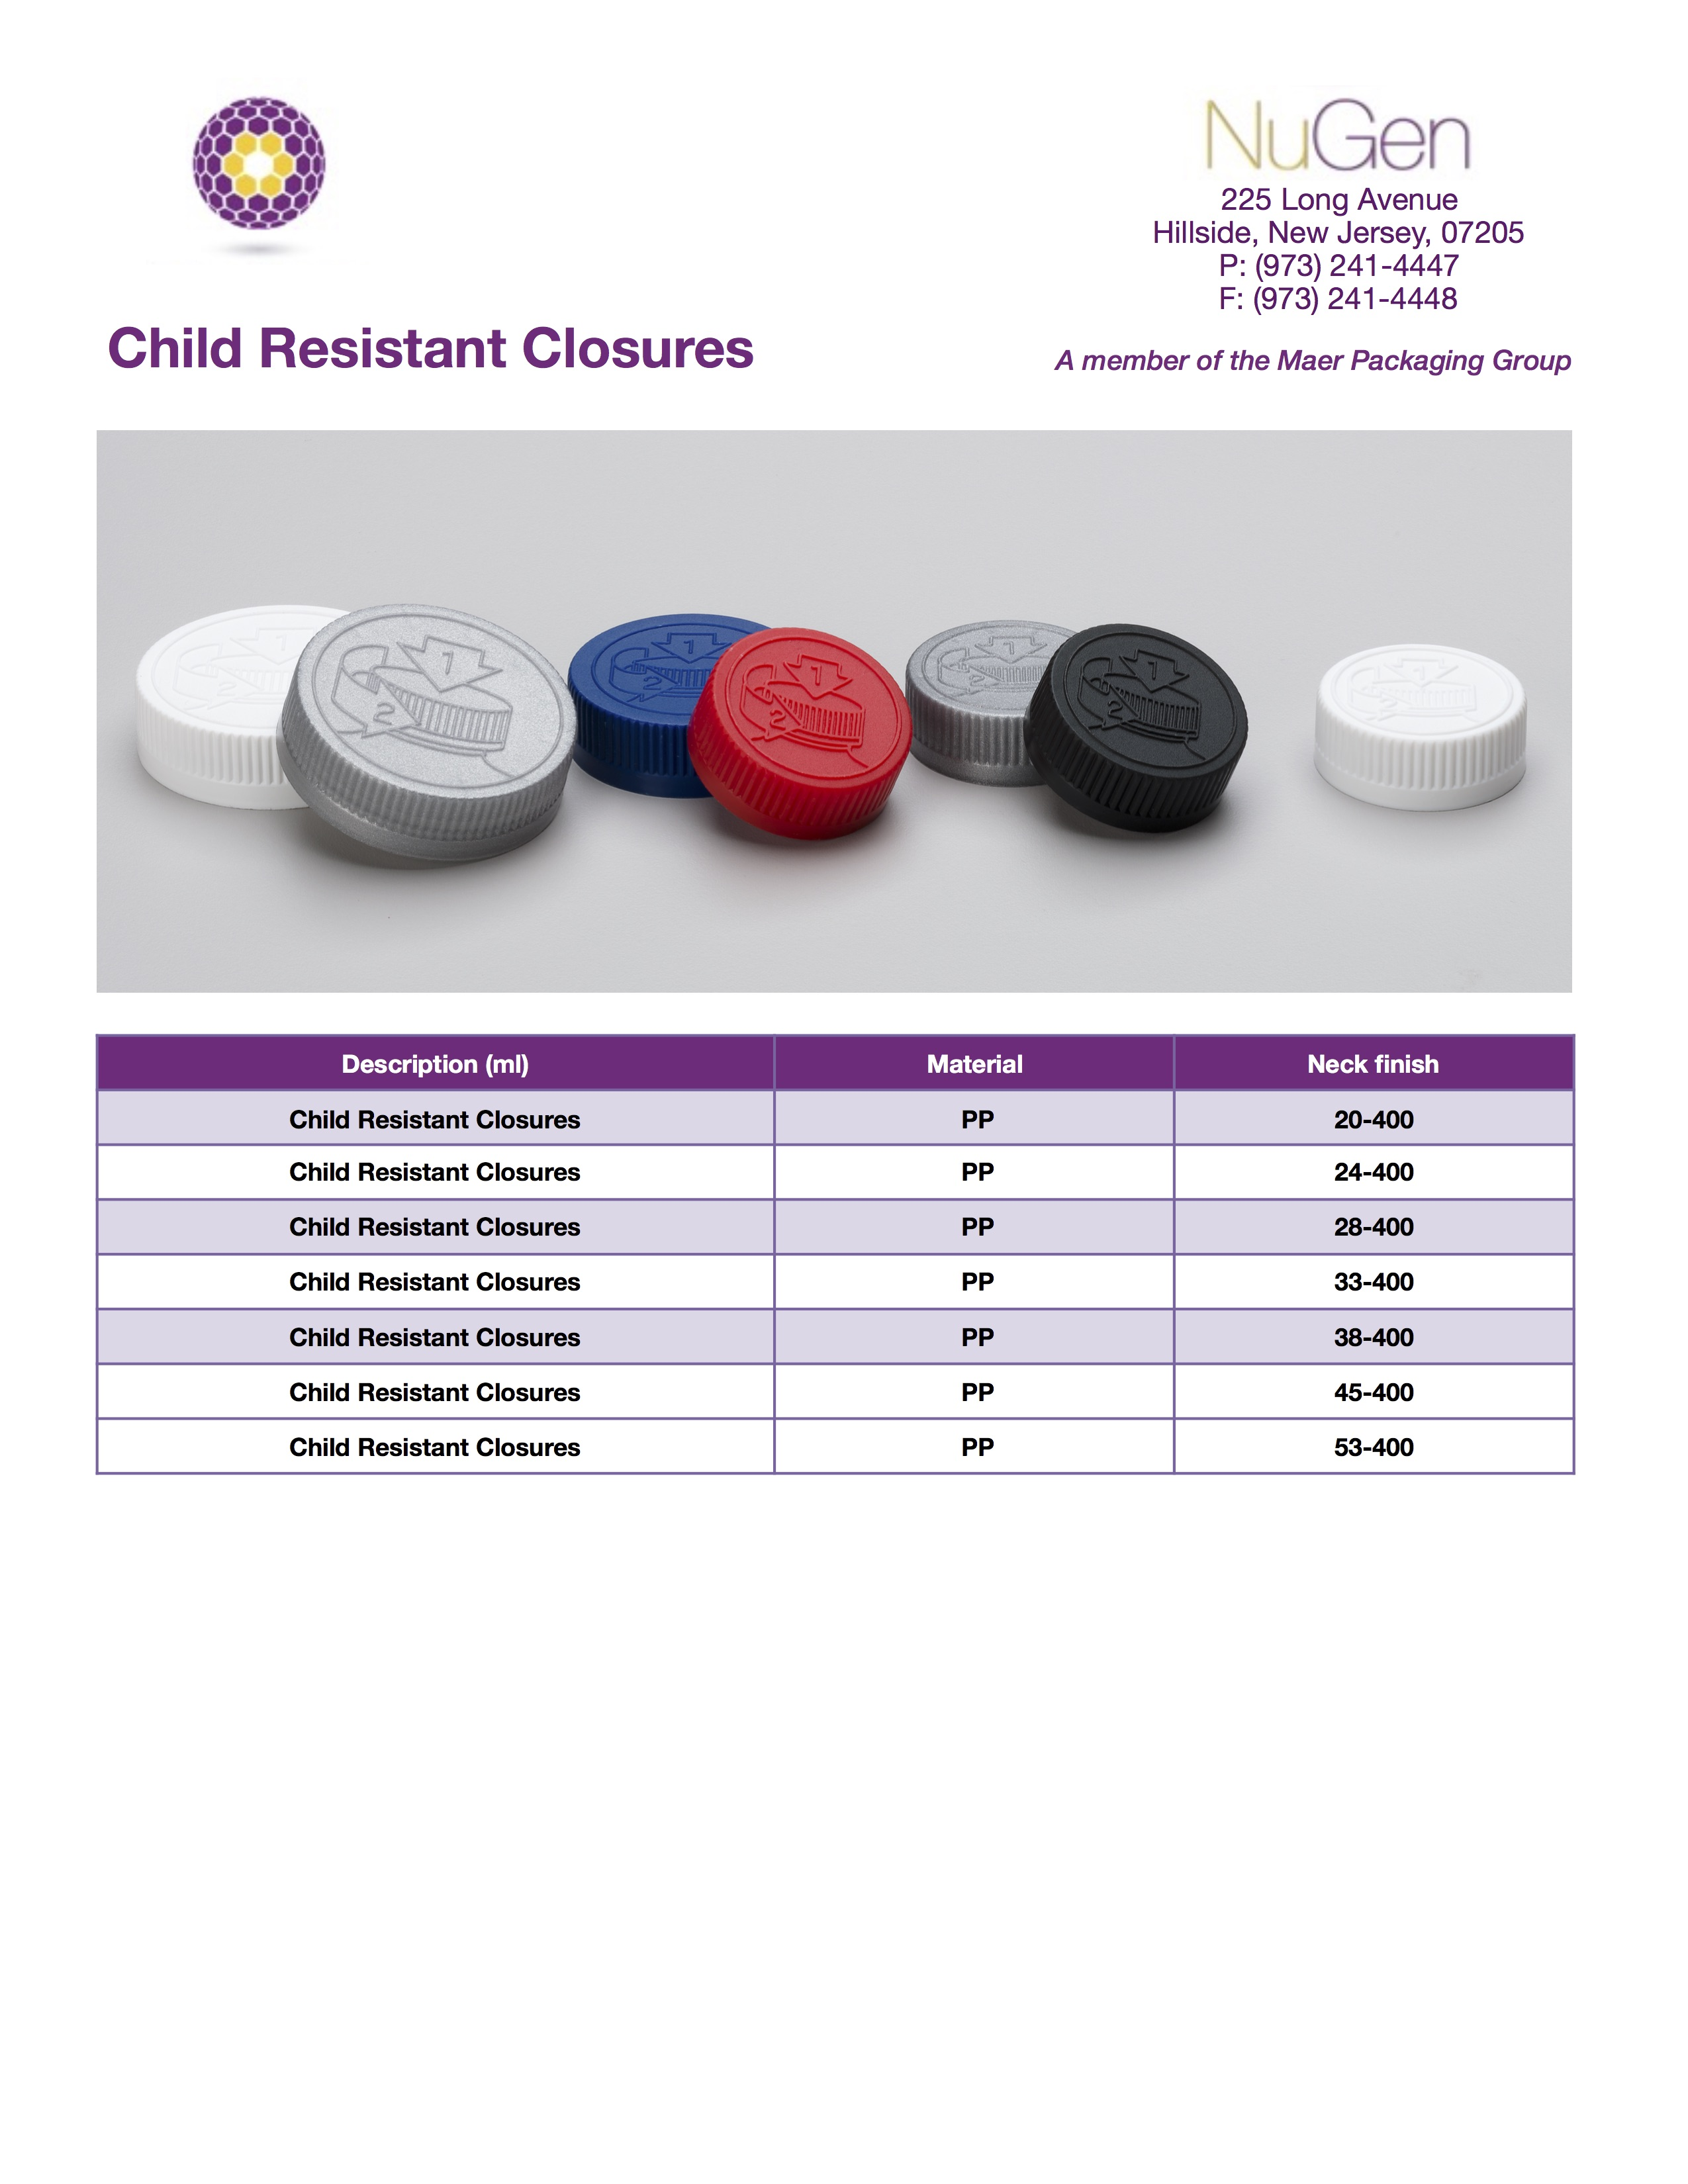 CHILDRESISTANTCLOSURES-12-4-2015